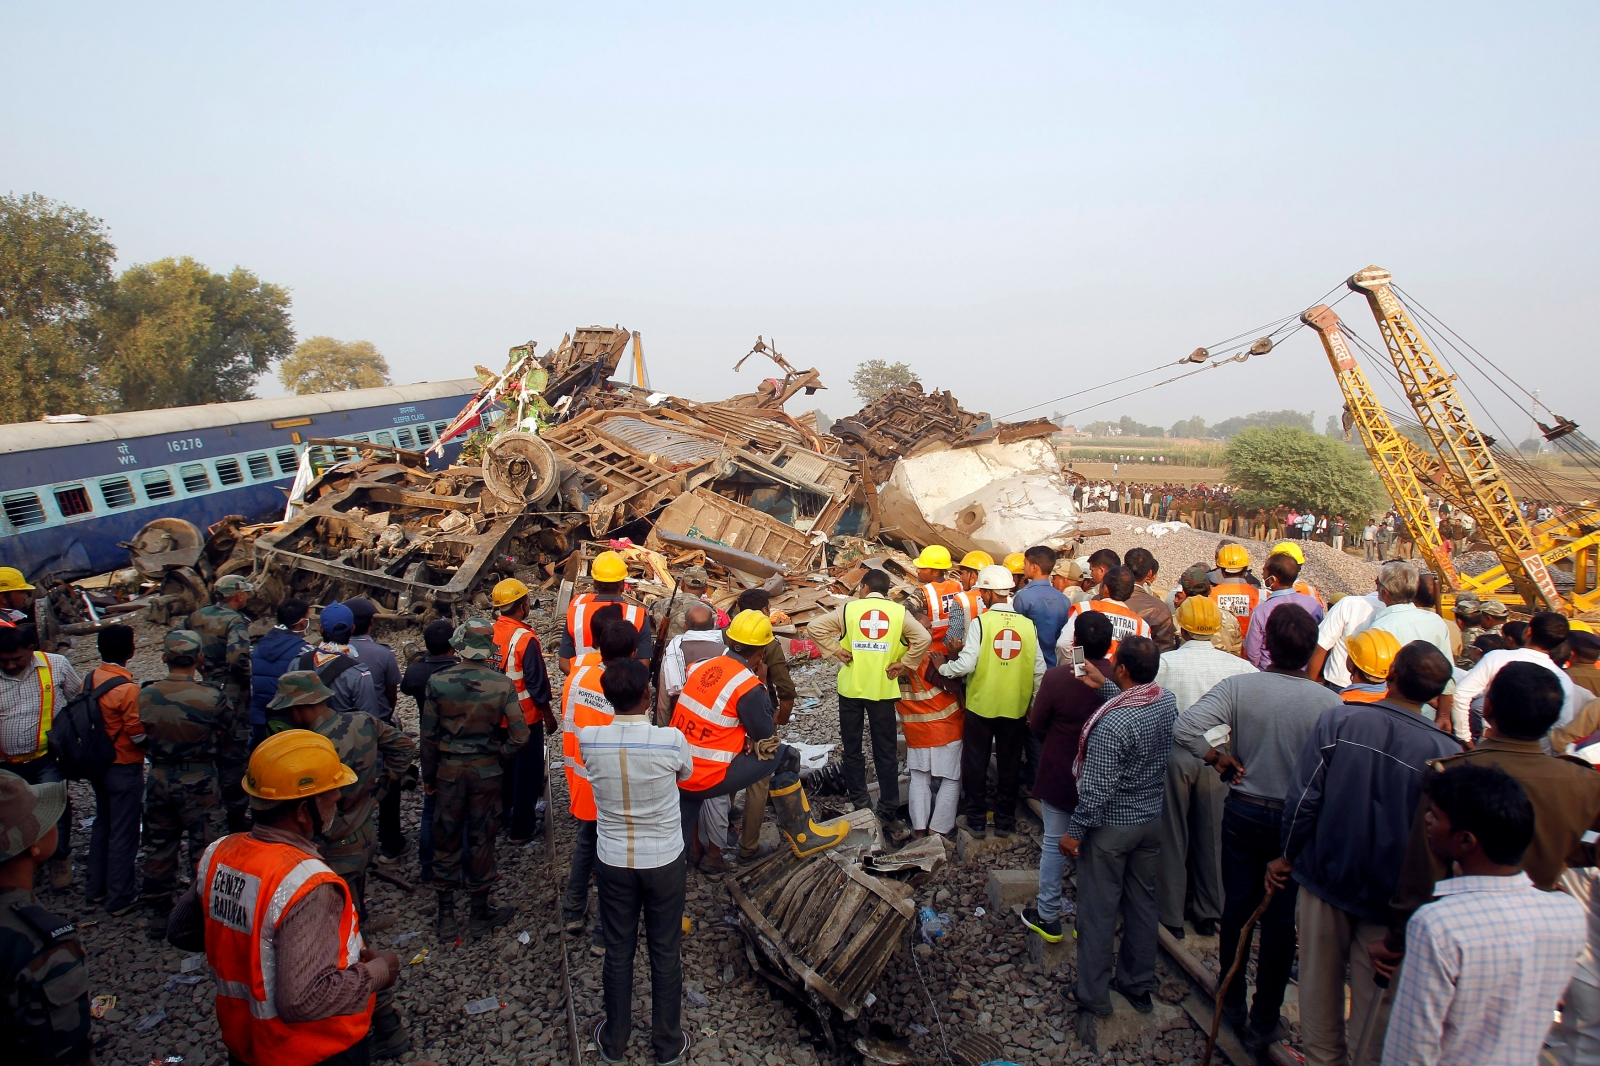 Rescuers finish search of Indian train wreck, 133 dead